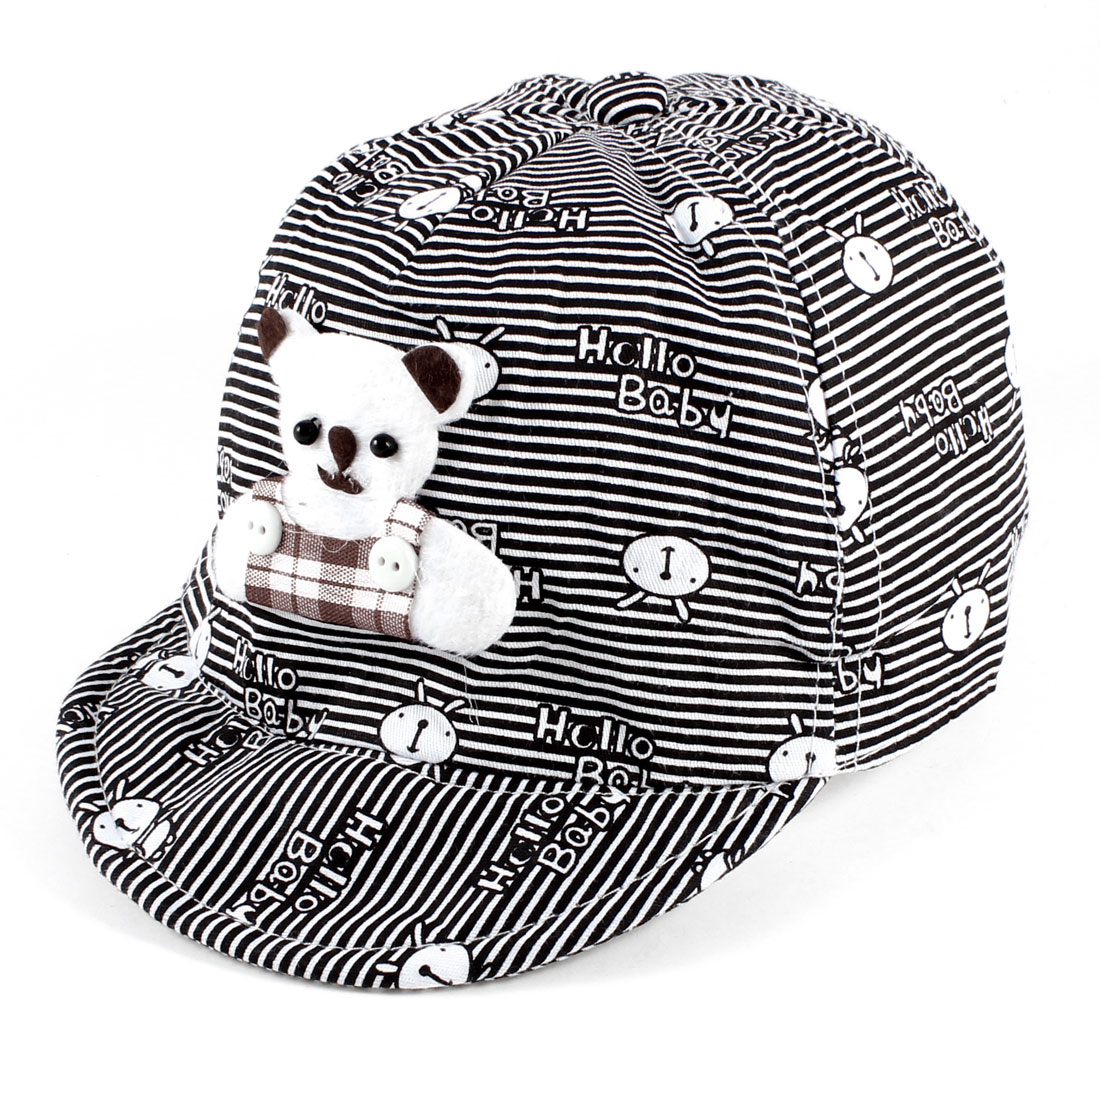 6-12 Months Boys Girls Cartoon Rabbit Print Bear Decor Ball Cap Hat Black White